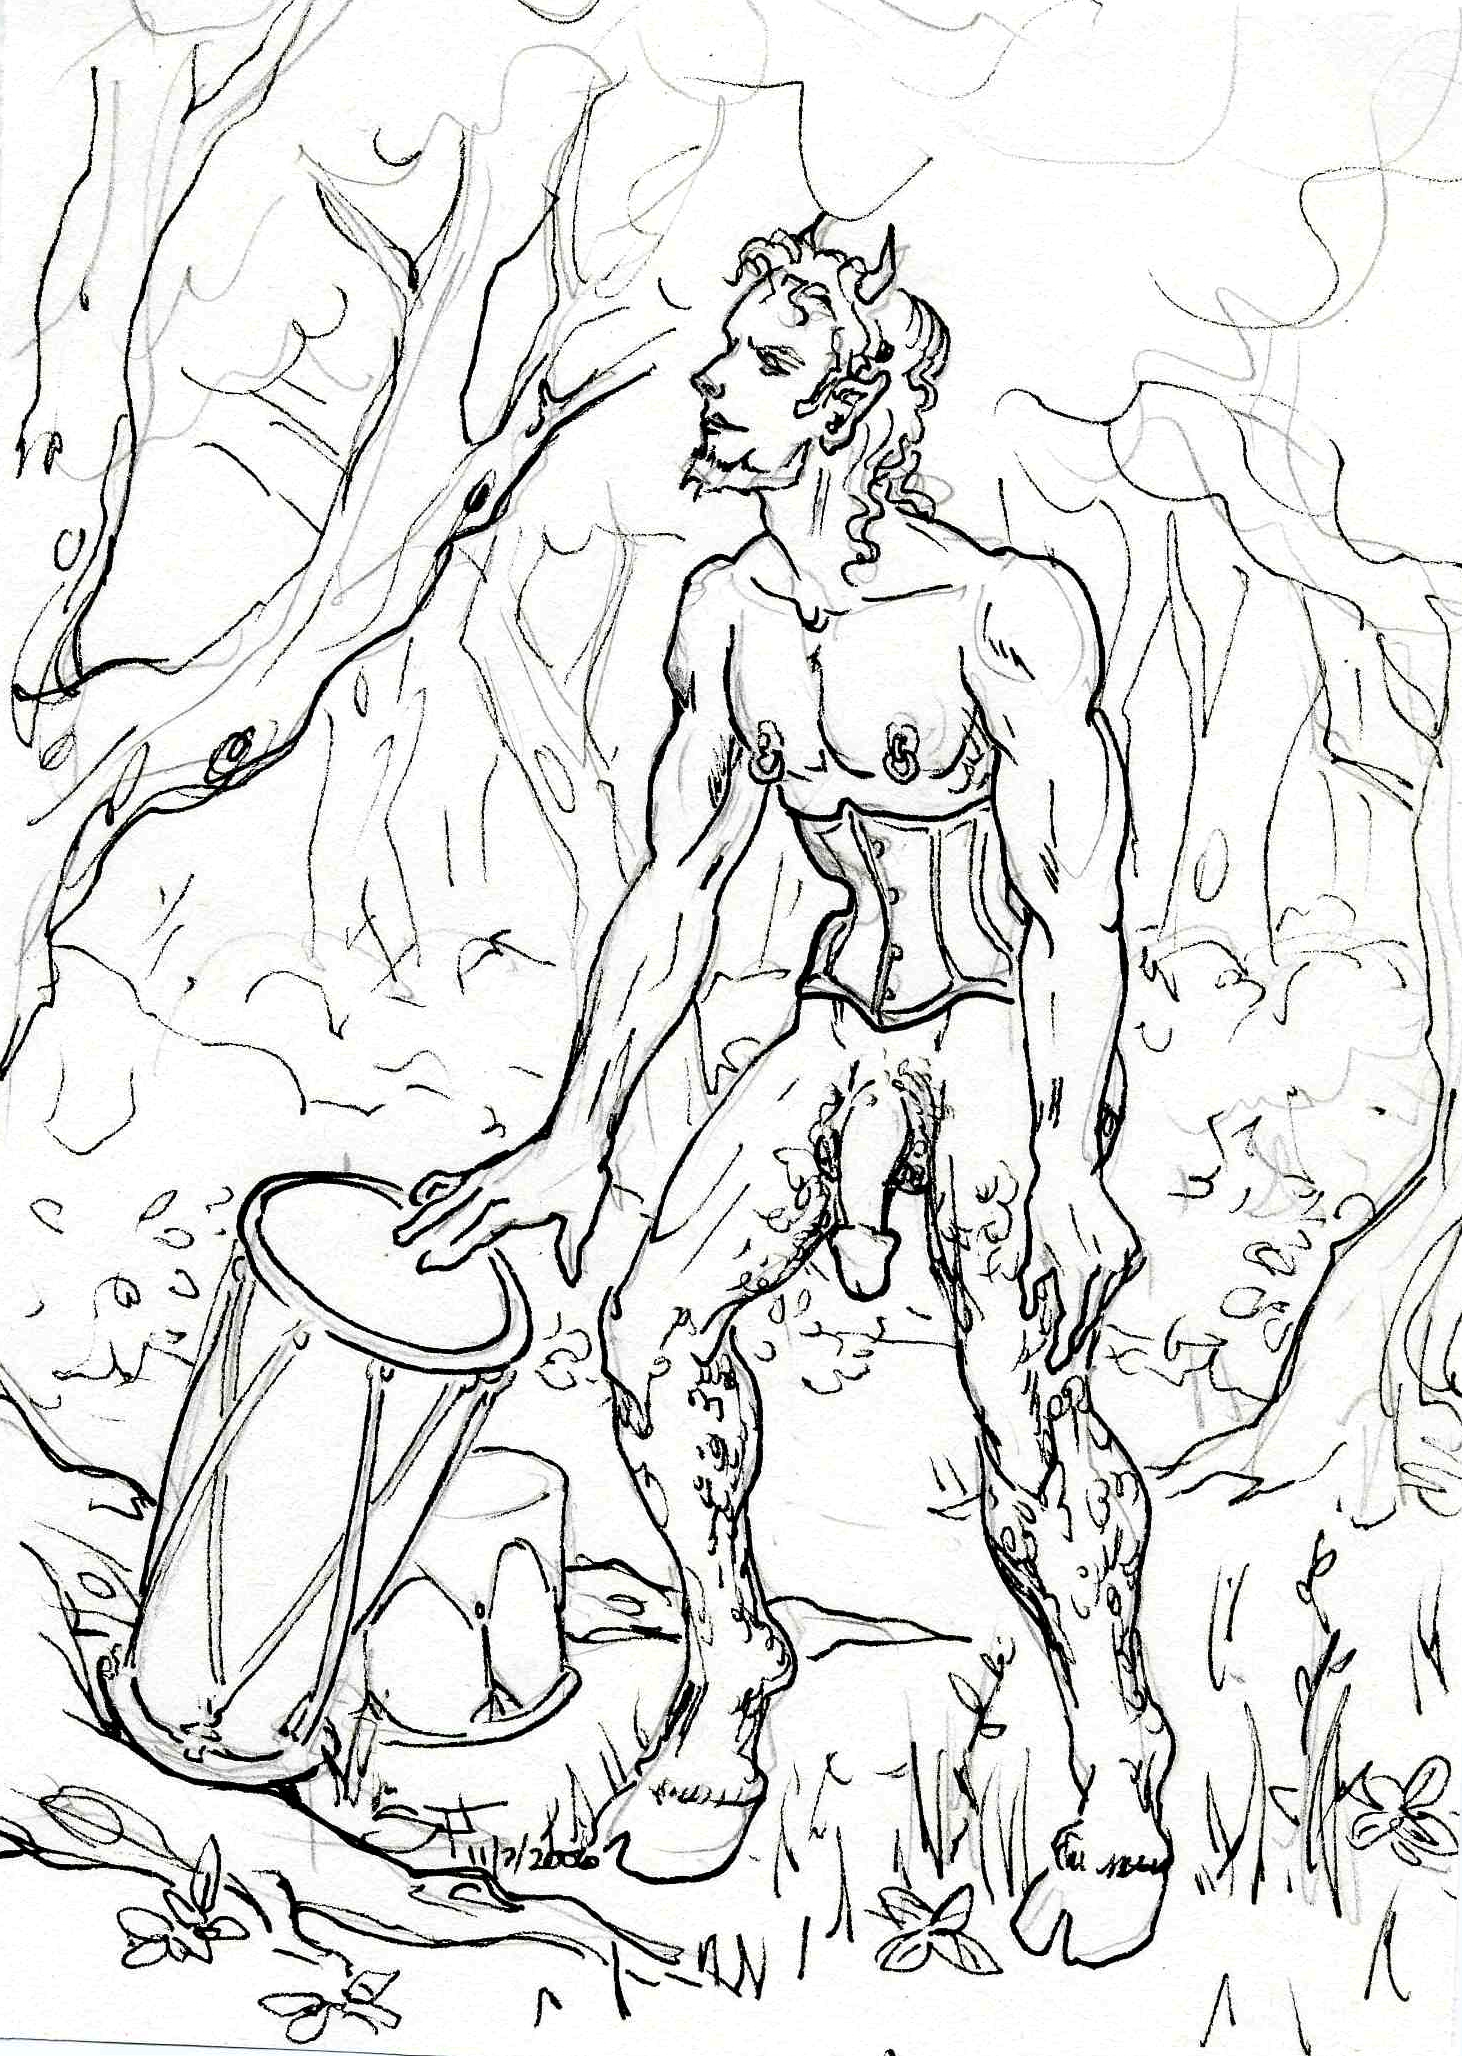 Naughty Faun with Drums 5x7 11 7 2006 by Suzanne Forbes